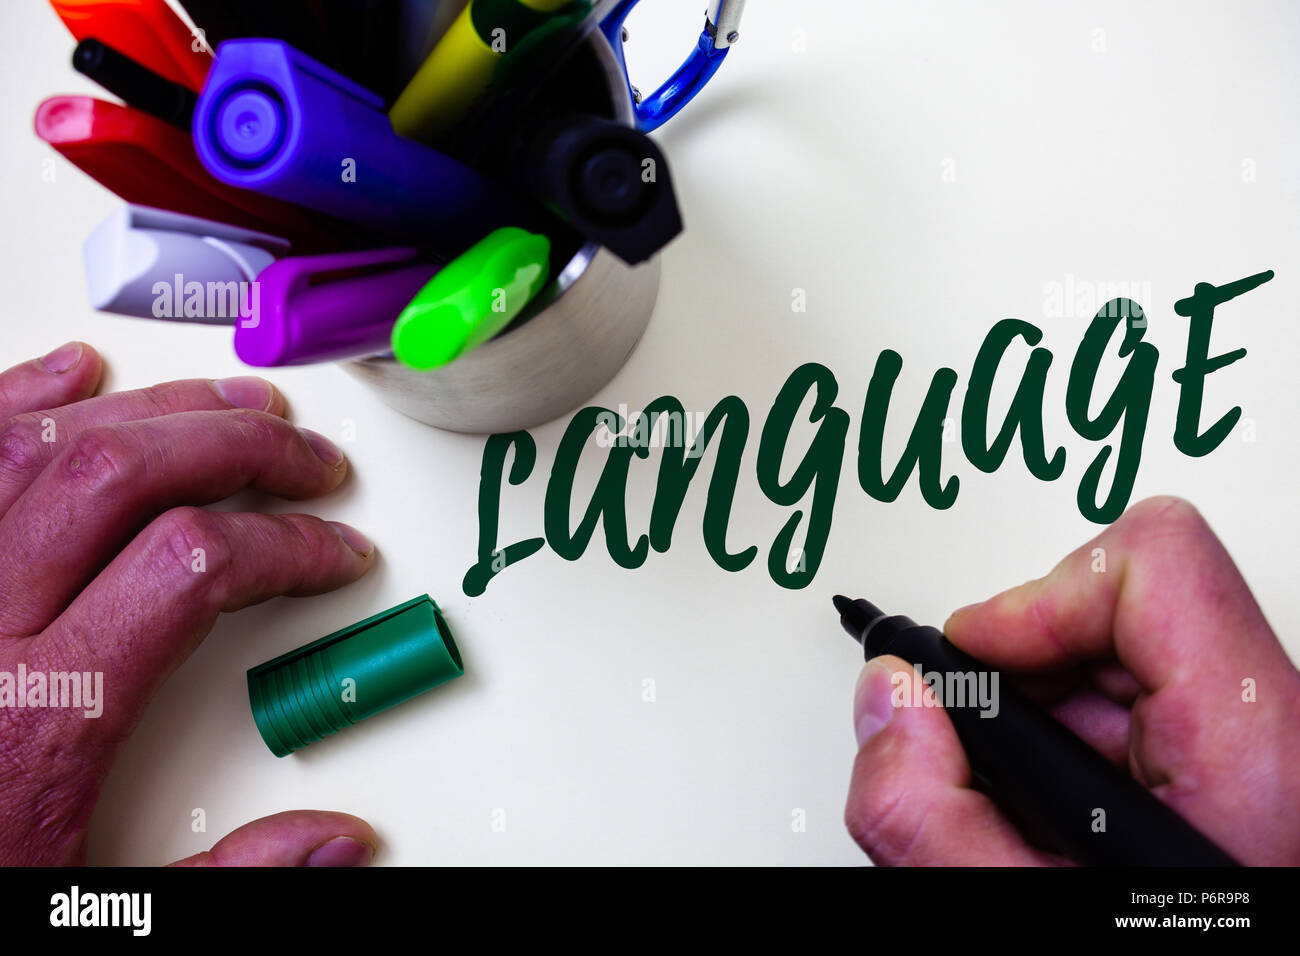 Word writing text Language. Business concept for Method of human communication Spoken Written Use Words Expression Artist study library colourful pen  - Stock Image